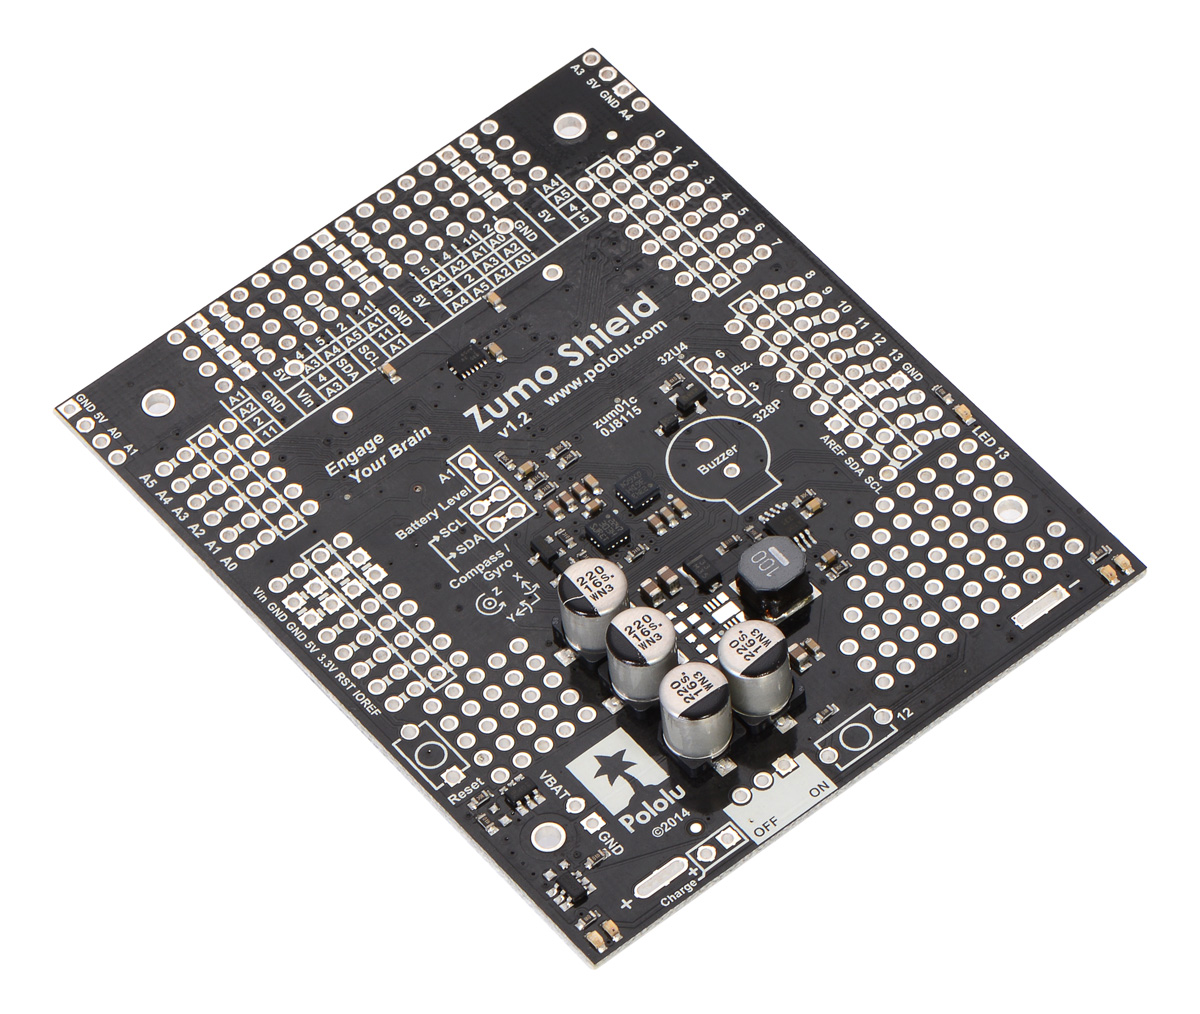 Pololu Zumo Shield For Arduino Users Guide Telephone Ringer Project Electronics Forum Circuits Projects And V12 As It Ships Assembled With Surface Mount Components Only